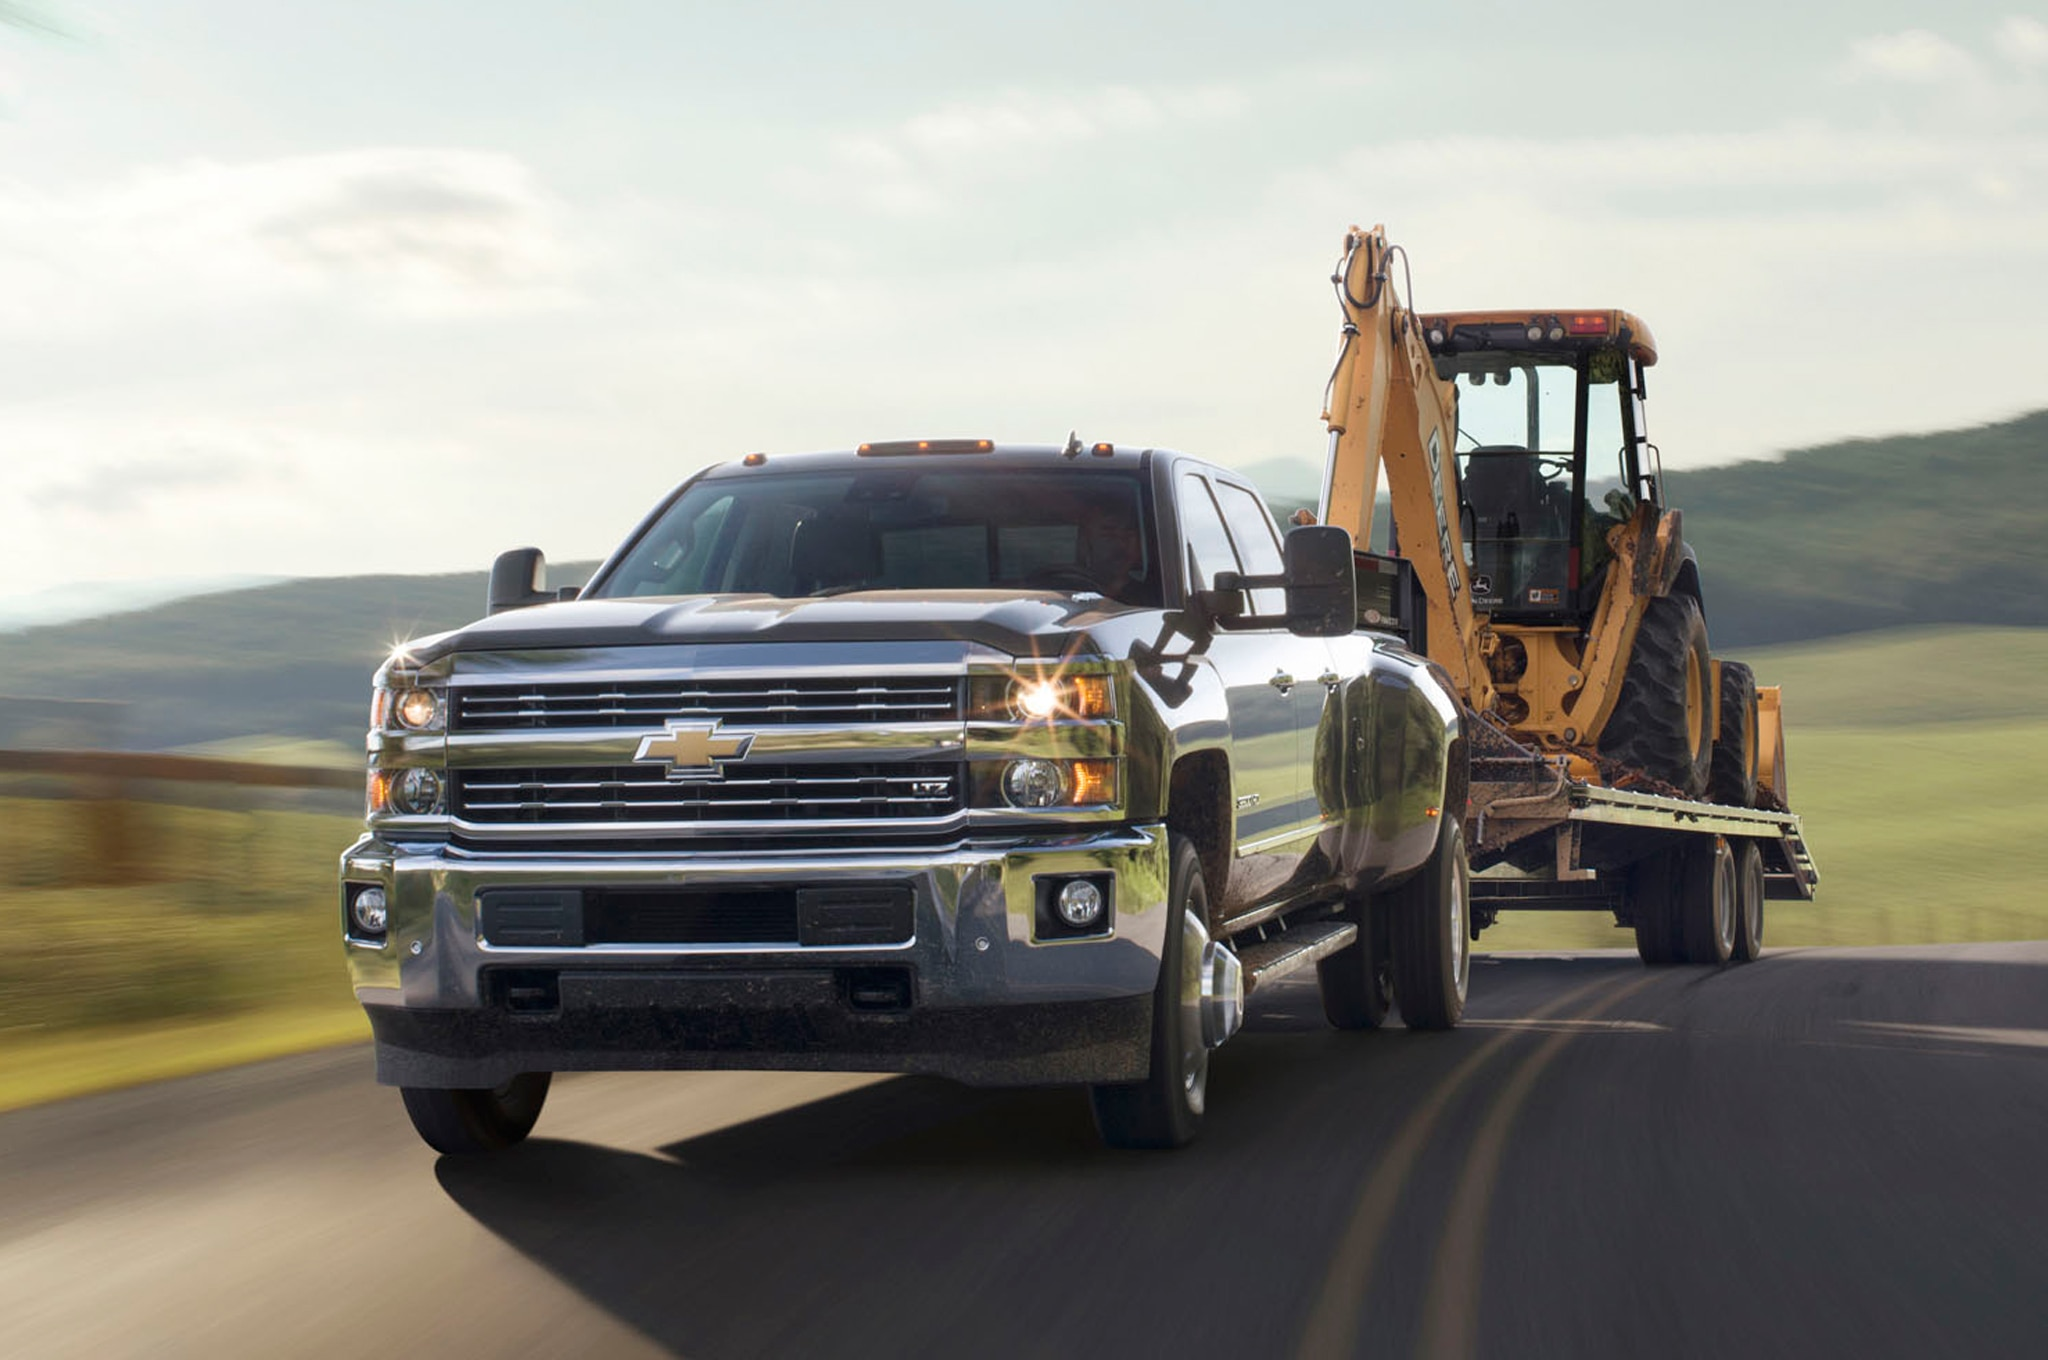 2015 Chevrolet Silverado 3500HD towing